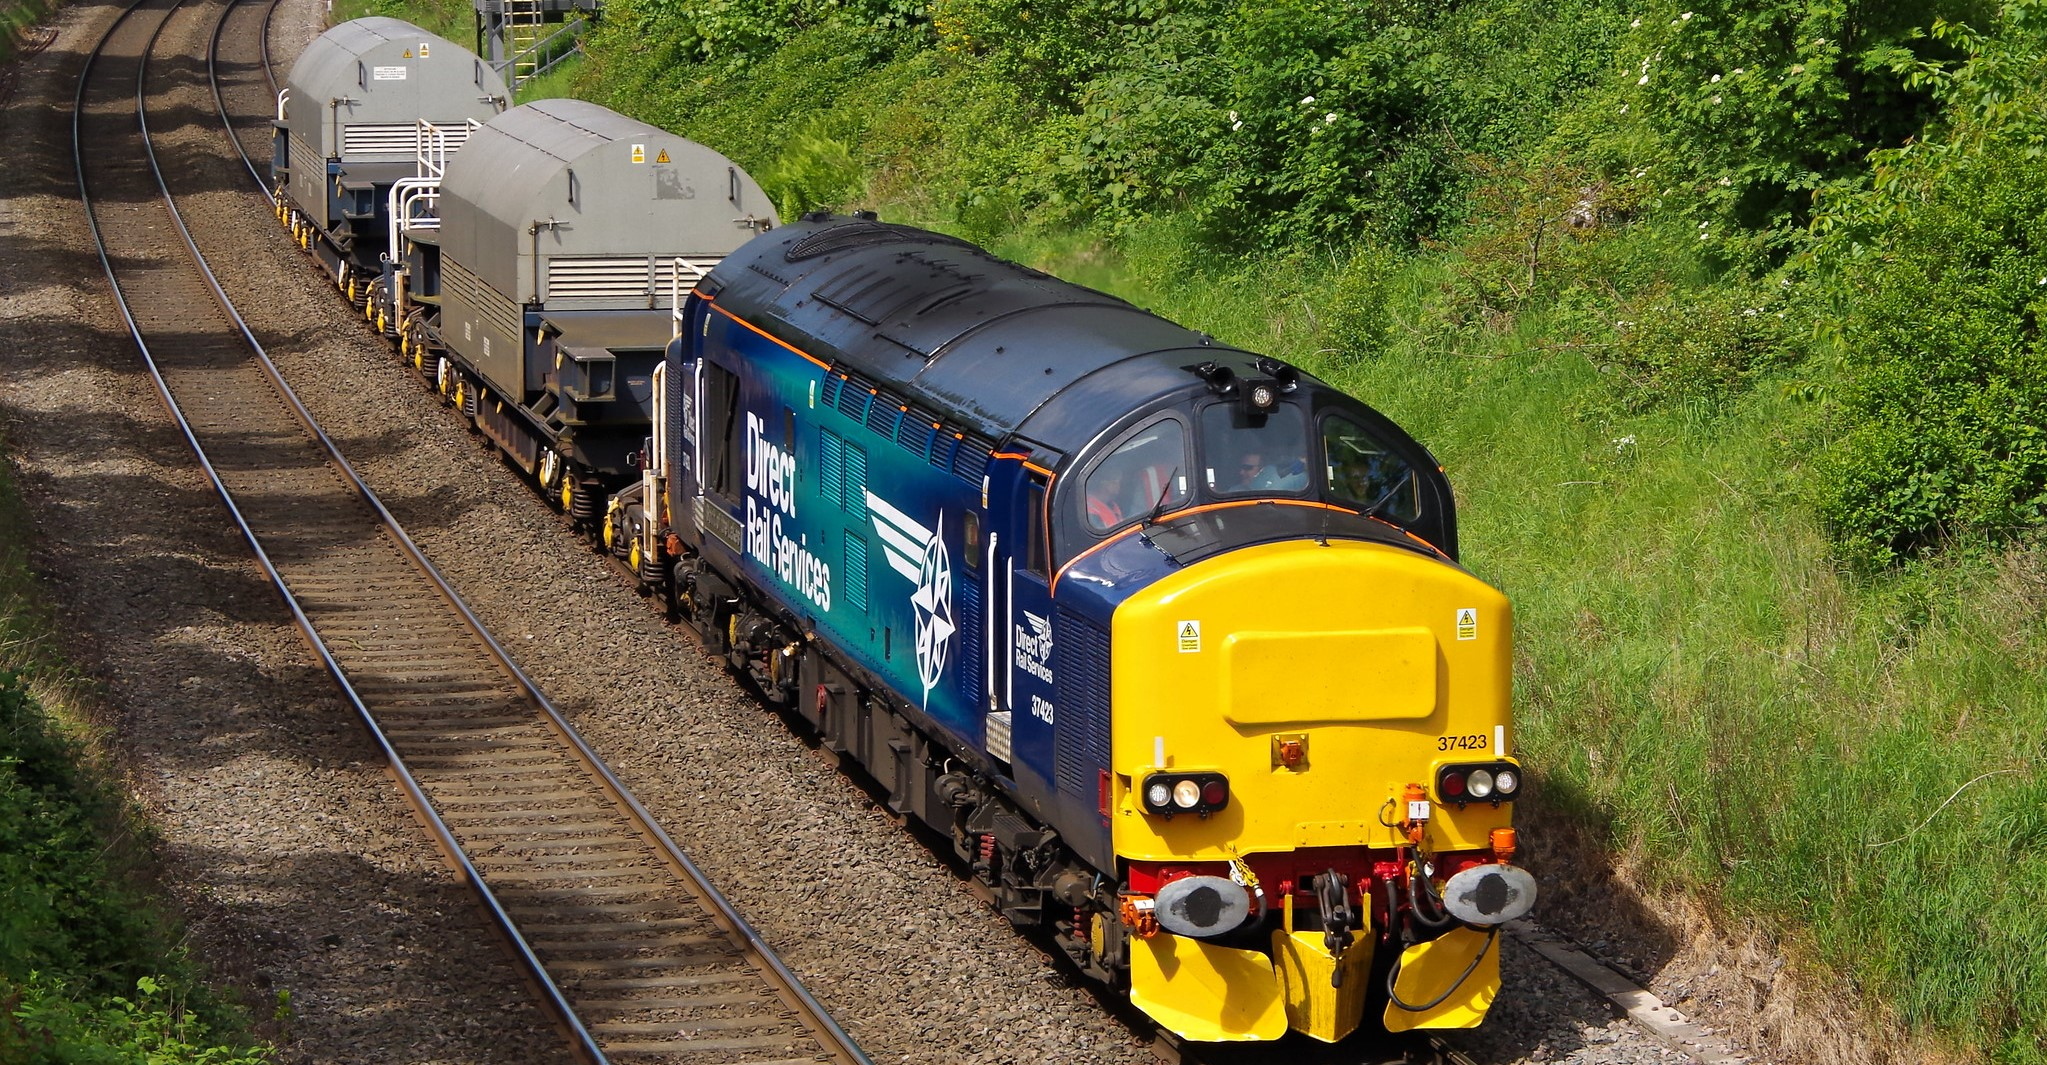 37423 hauls two Nuclear Flask wagons to Devonport in May 2014.  ©Clagmaster